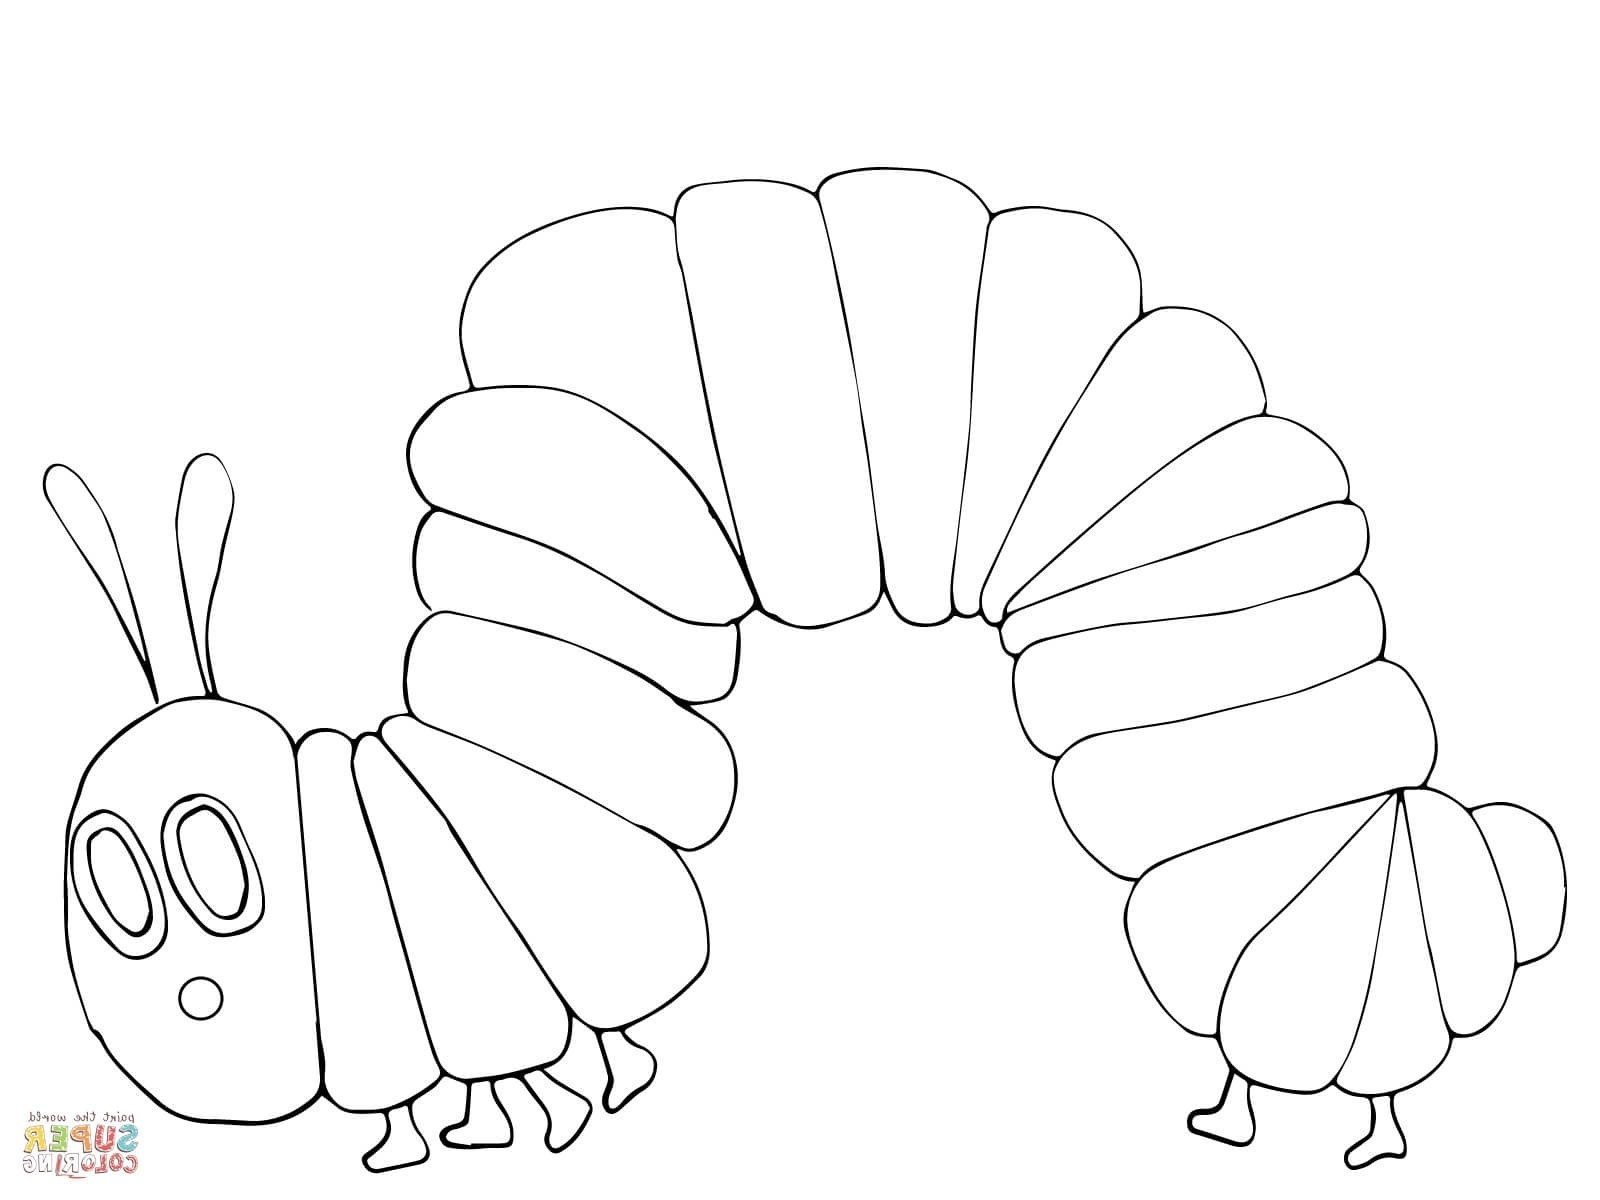 Hungry Caterpillar Coloring Pages Hungry Caterpillar Butterfly Coloring Page Refrence Very Hungry